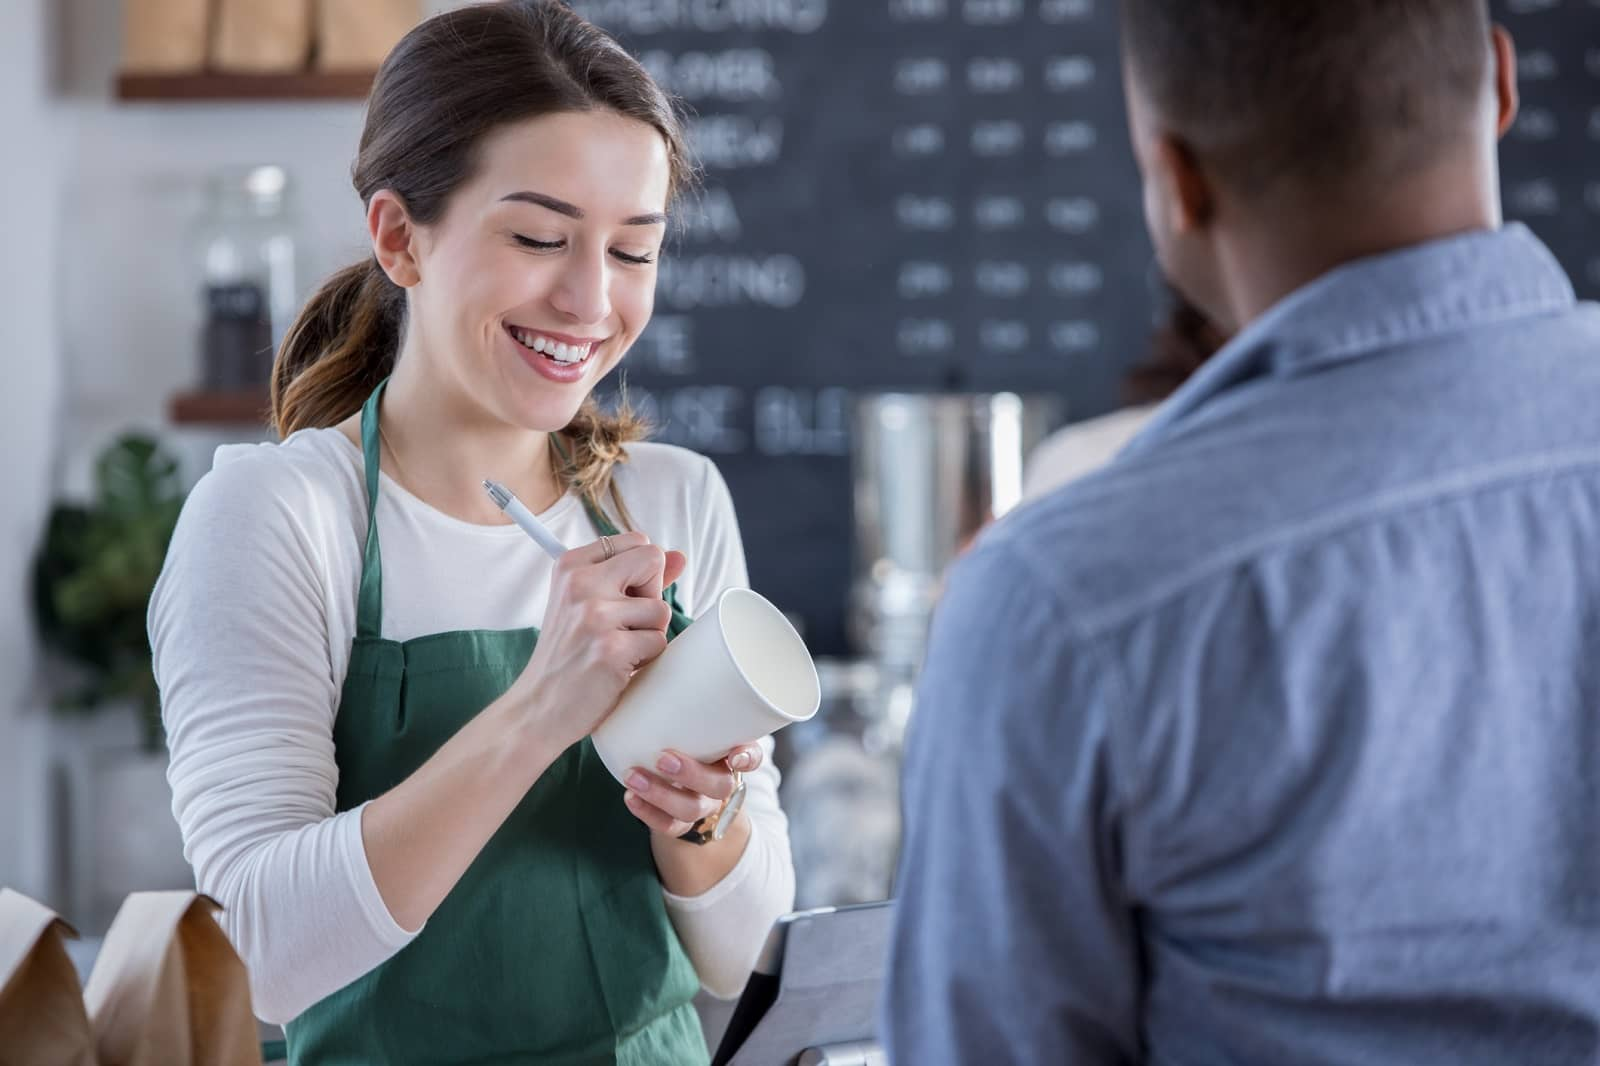 Cheerful coffee shop barista writes order on cup